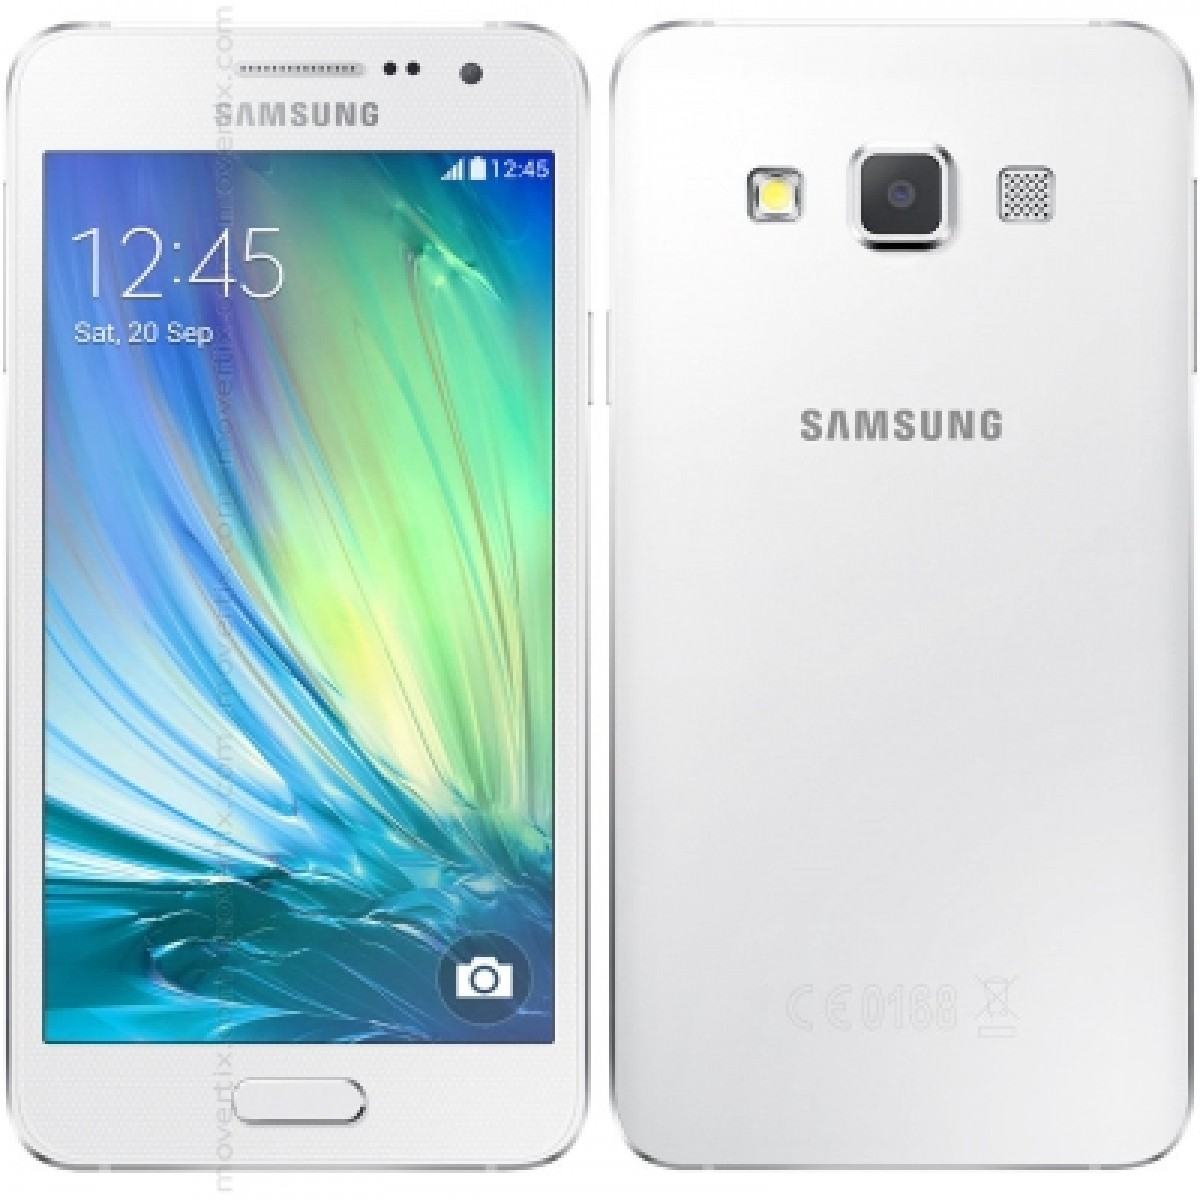 Samsung A3 Libre Samsung Galaxy A7 White A700f 8806086672634 Movertix